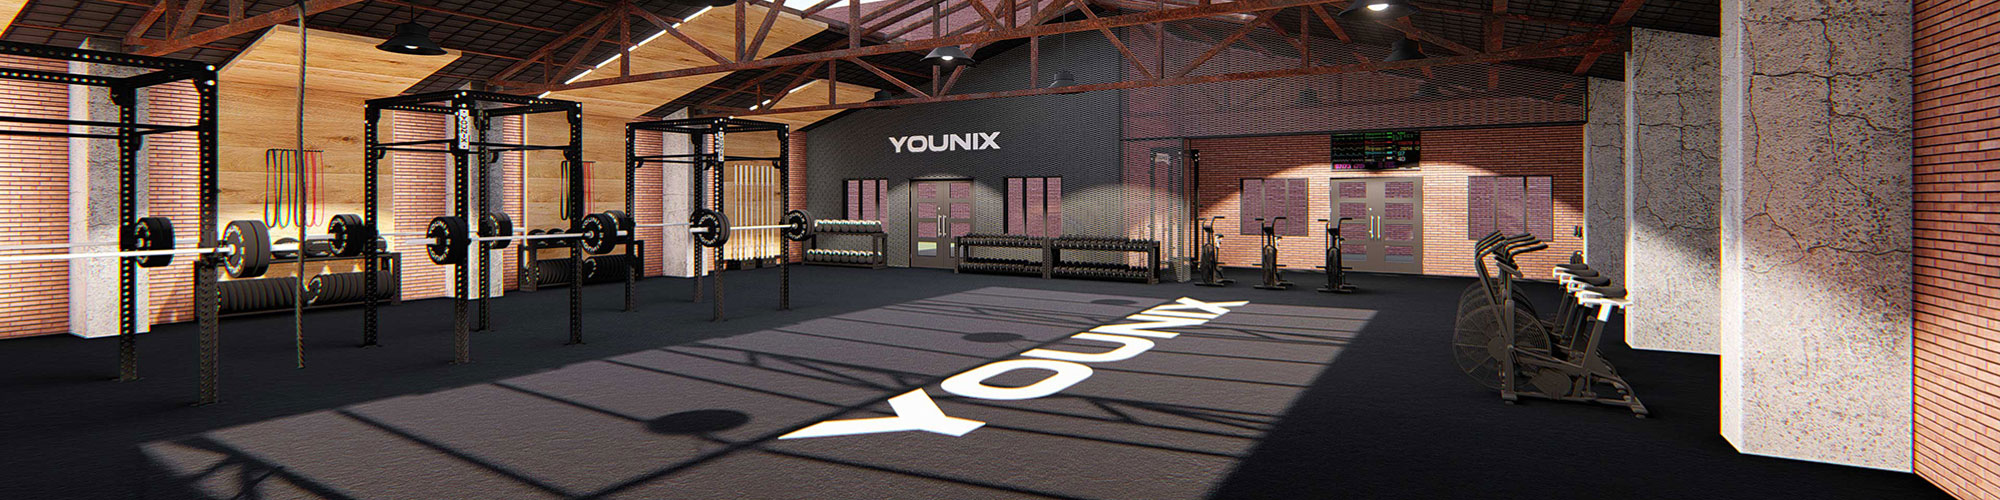 Modern gym design with Younix equipment